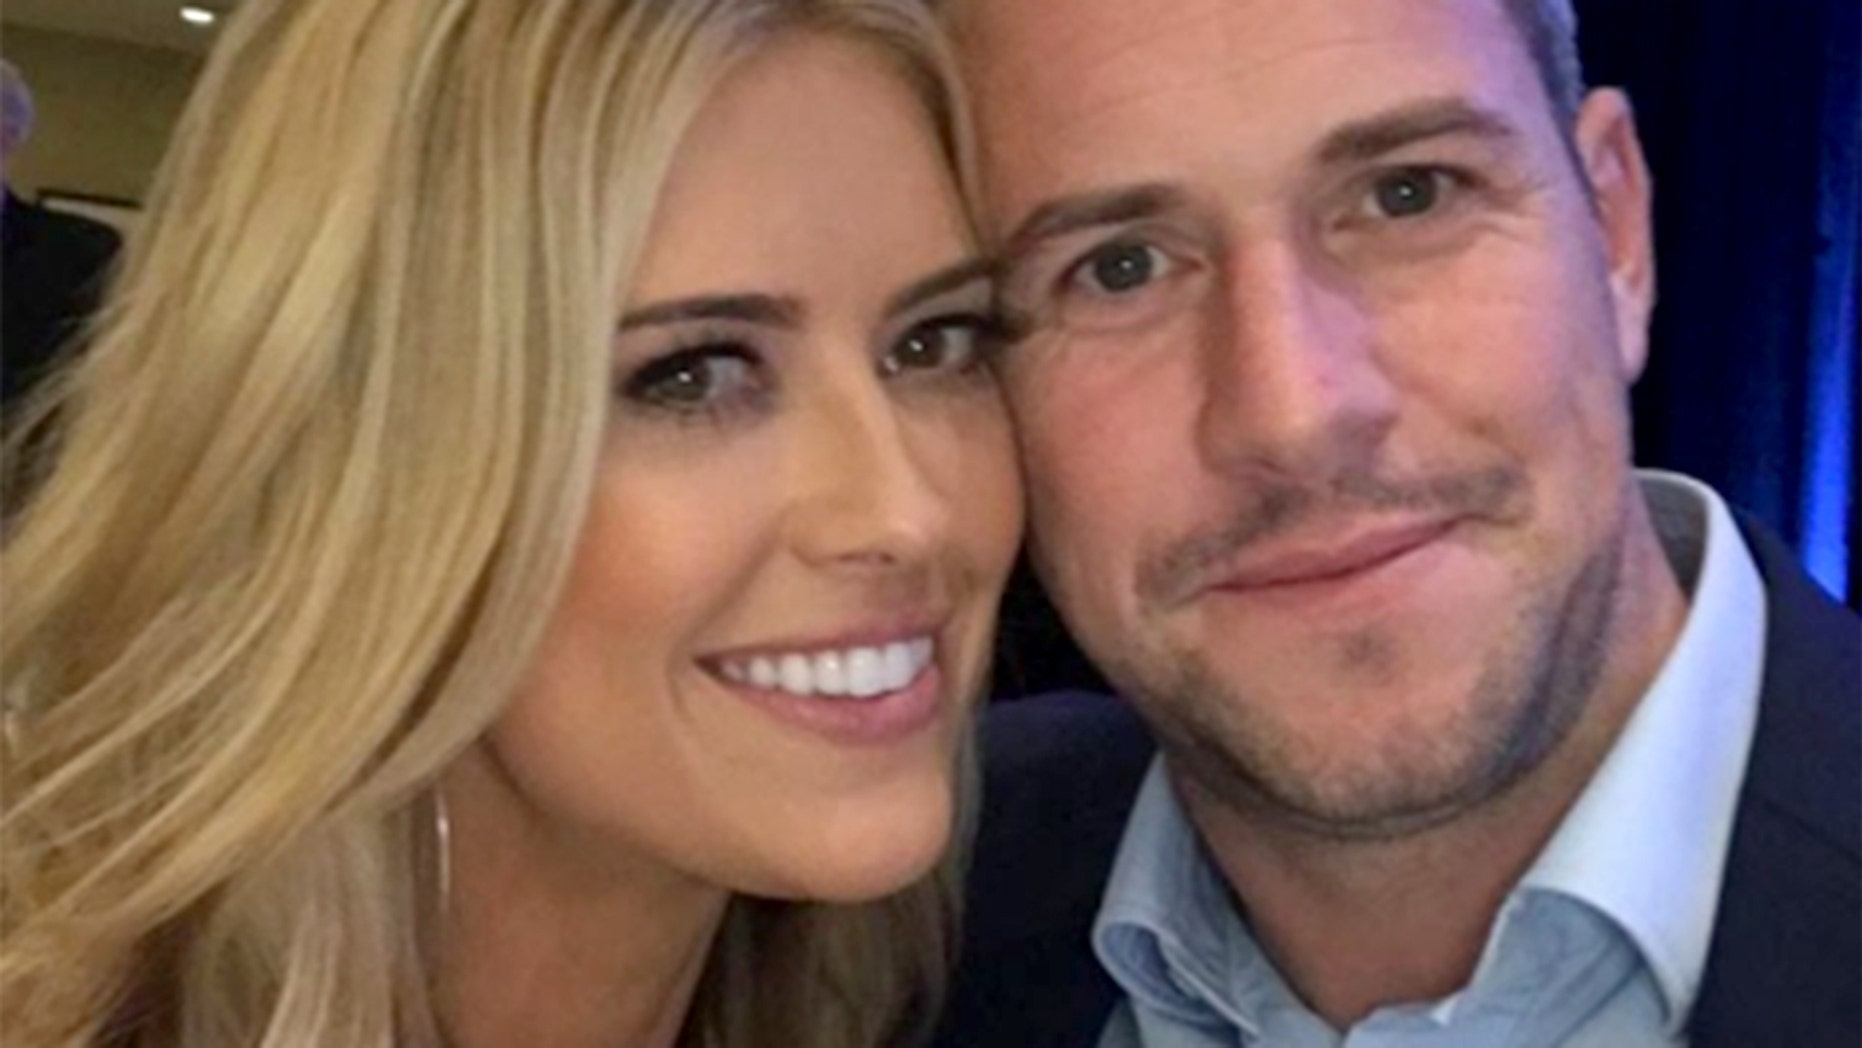 Christina El Moussa met Ant Anstead through a mutual friend at the end of 2017.